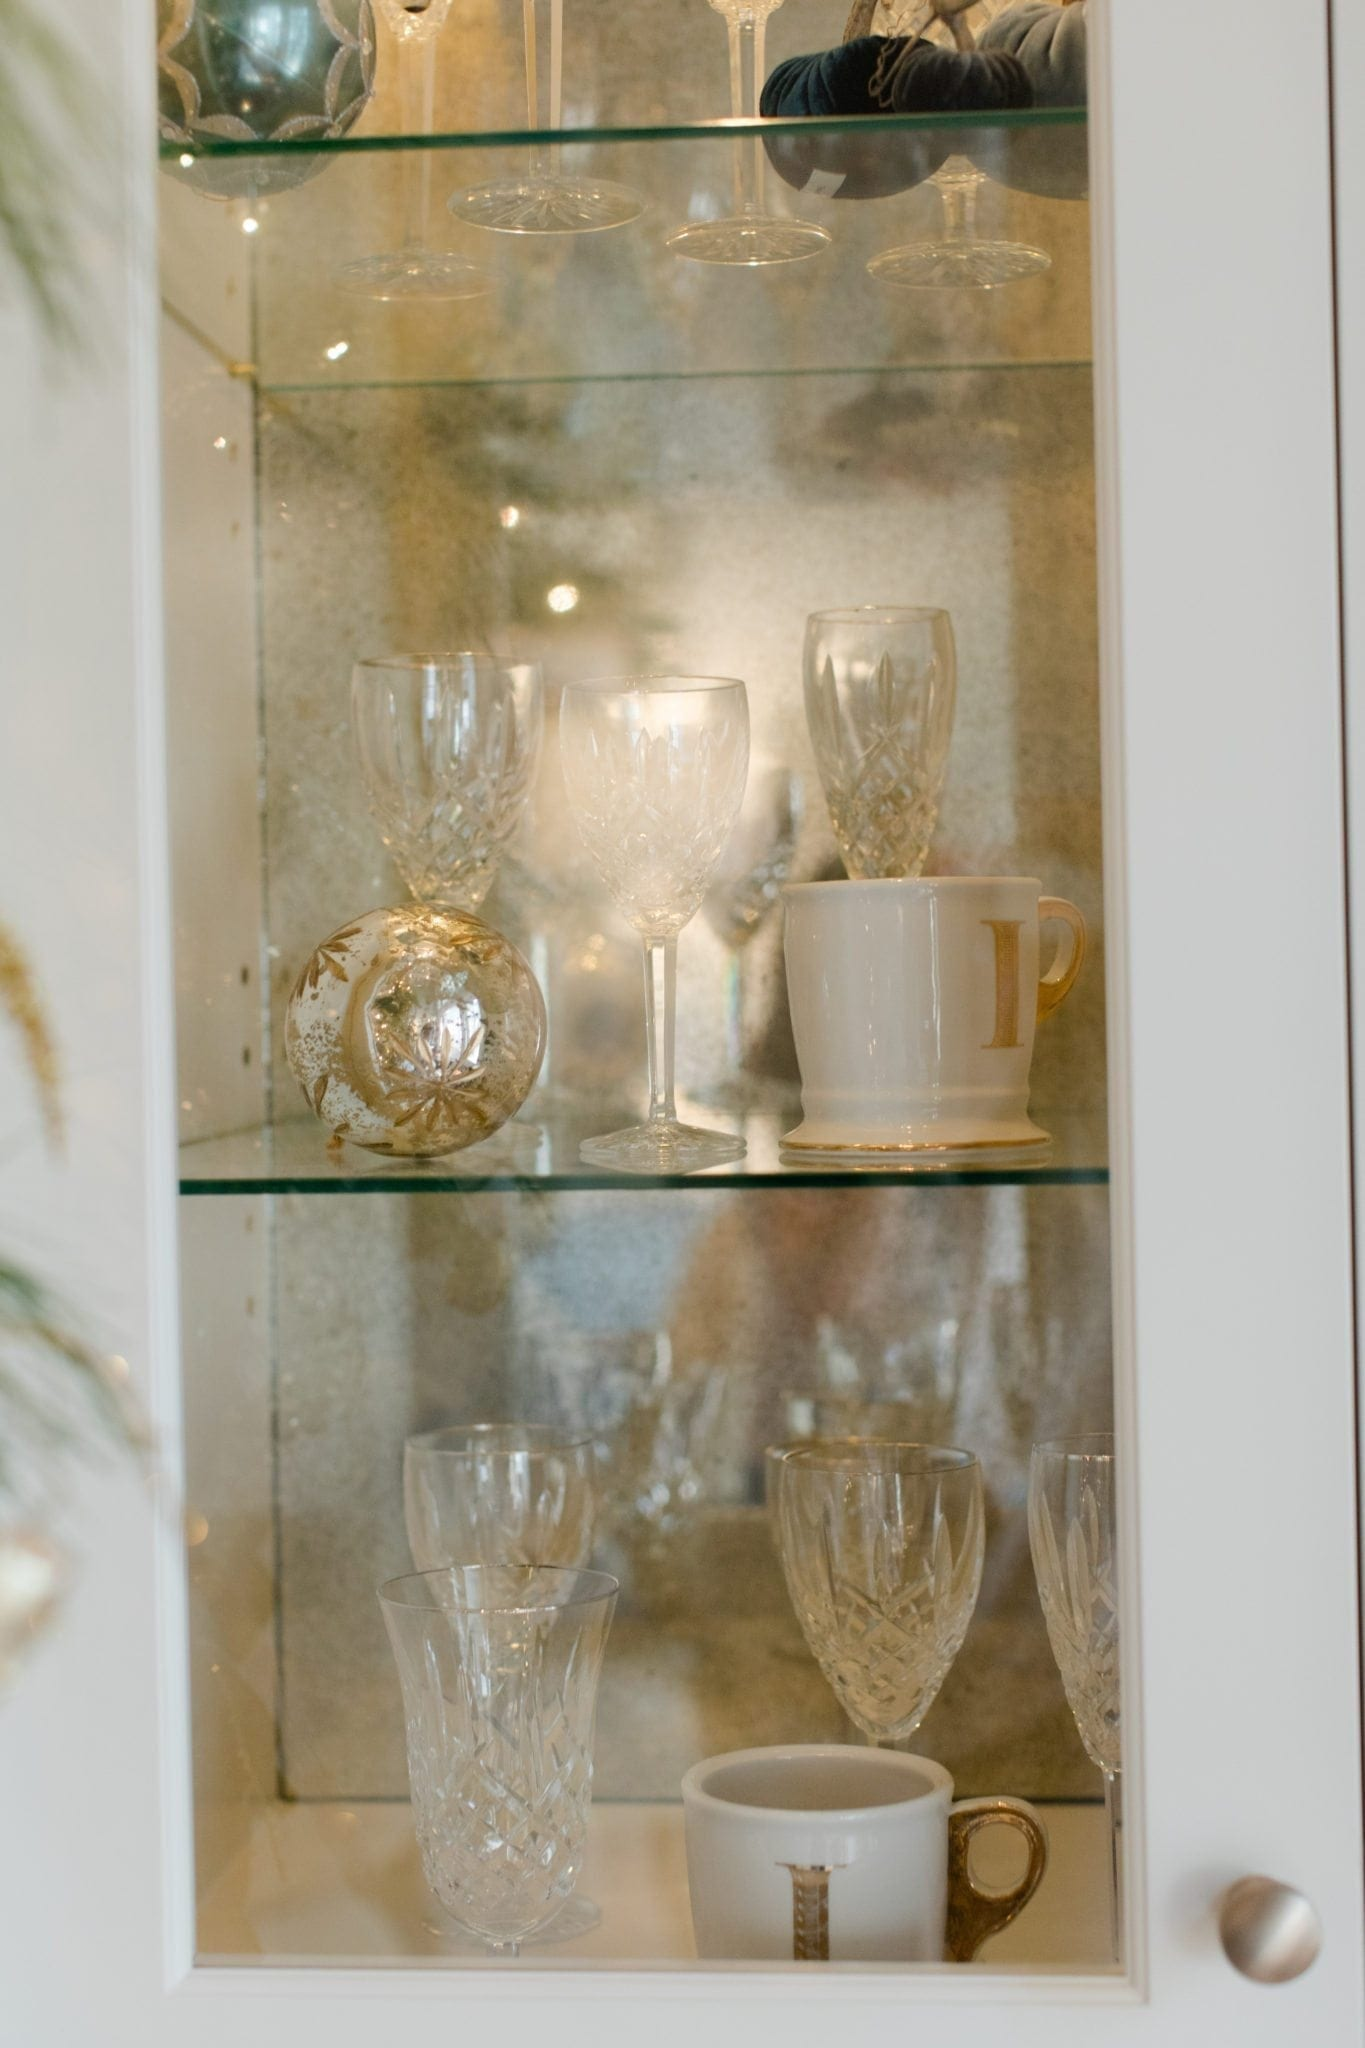 Gold and white glass with built in cabinets.